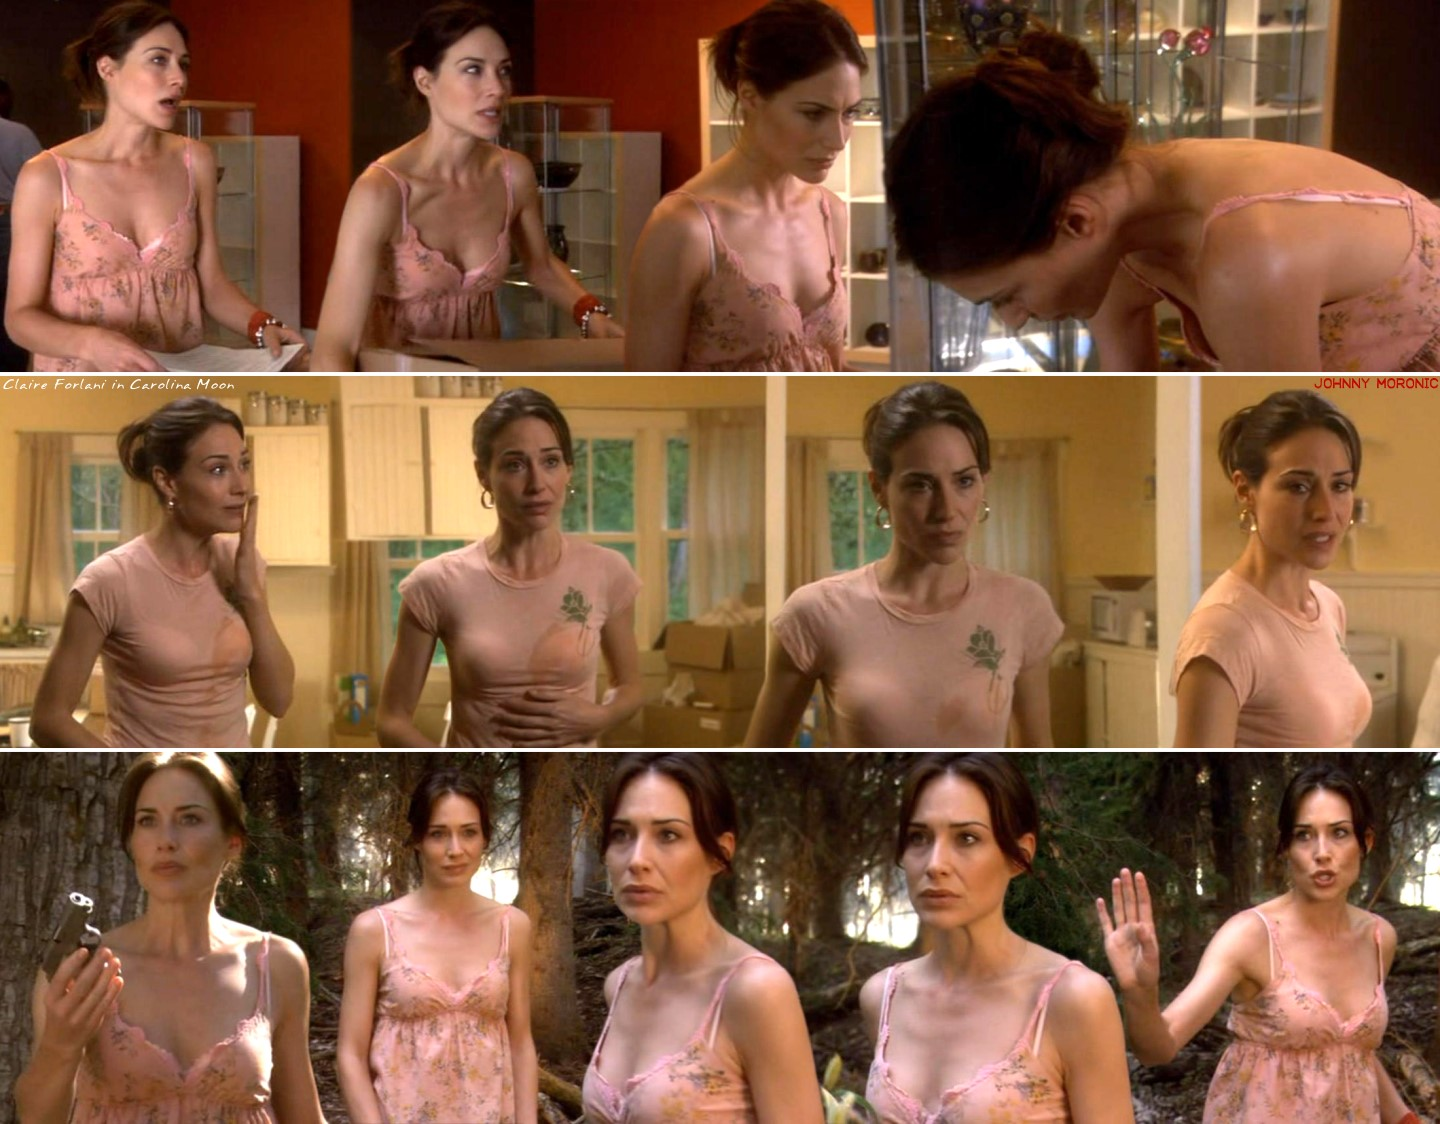 Claire Forlani Naked Pics Mobile Optimised Photo For Android Iphone